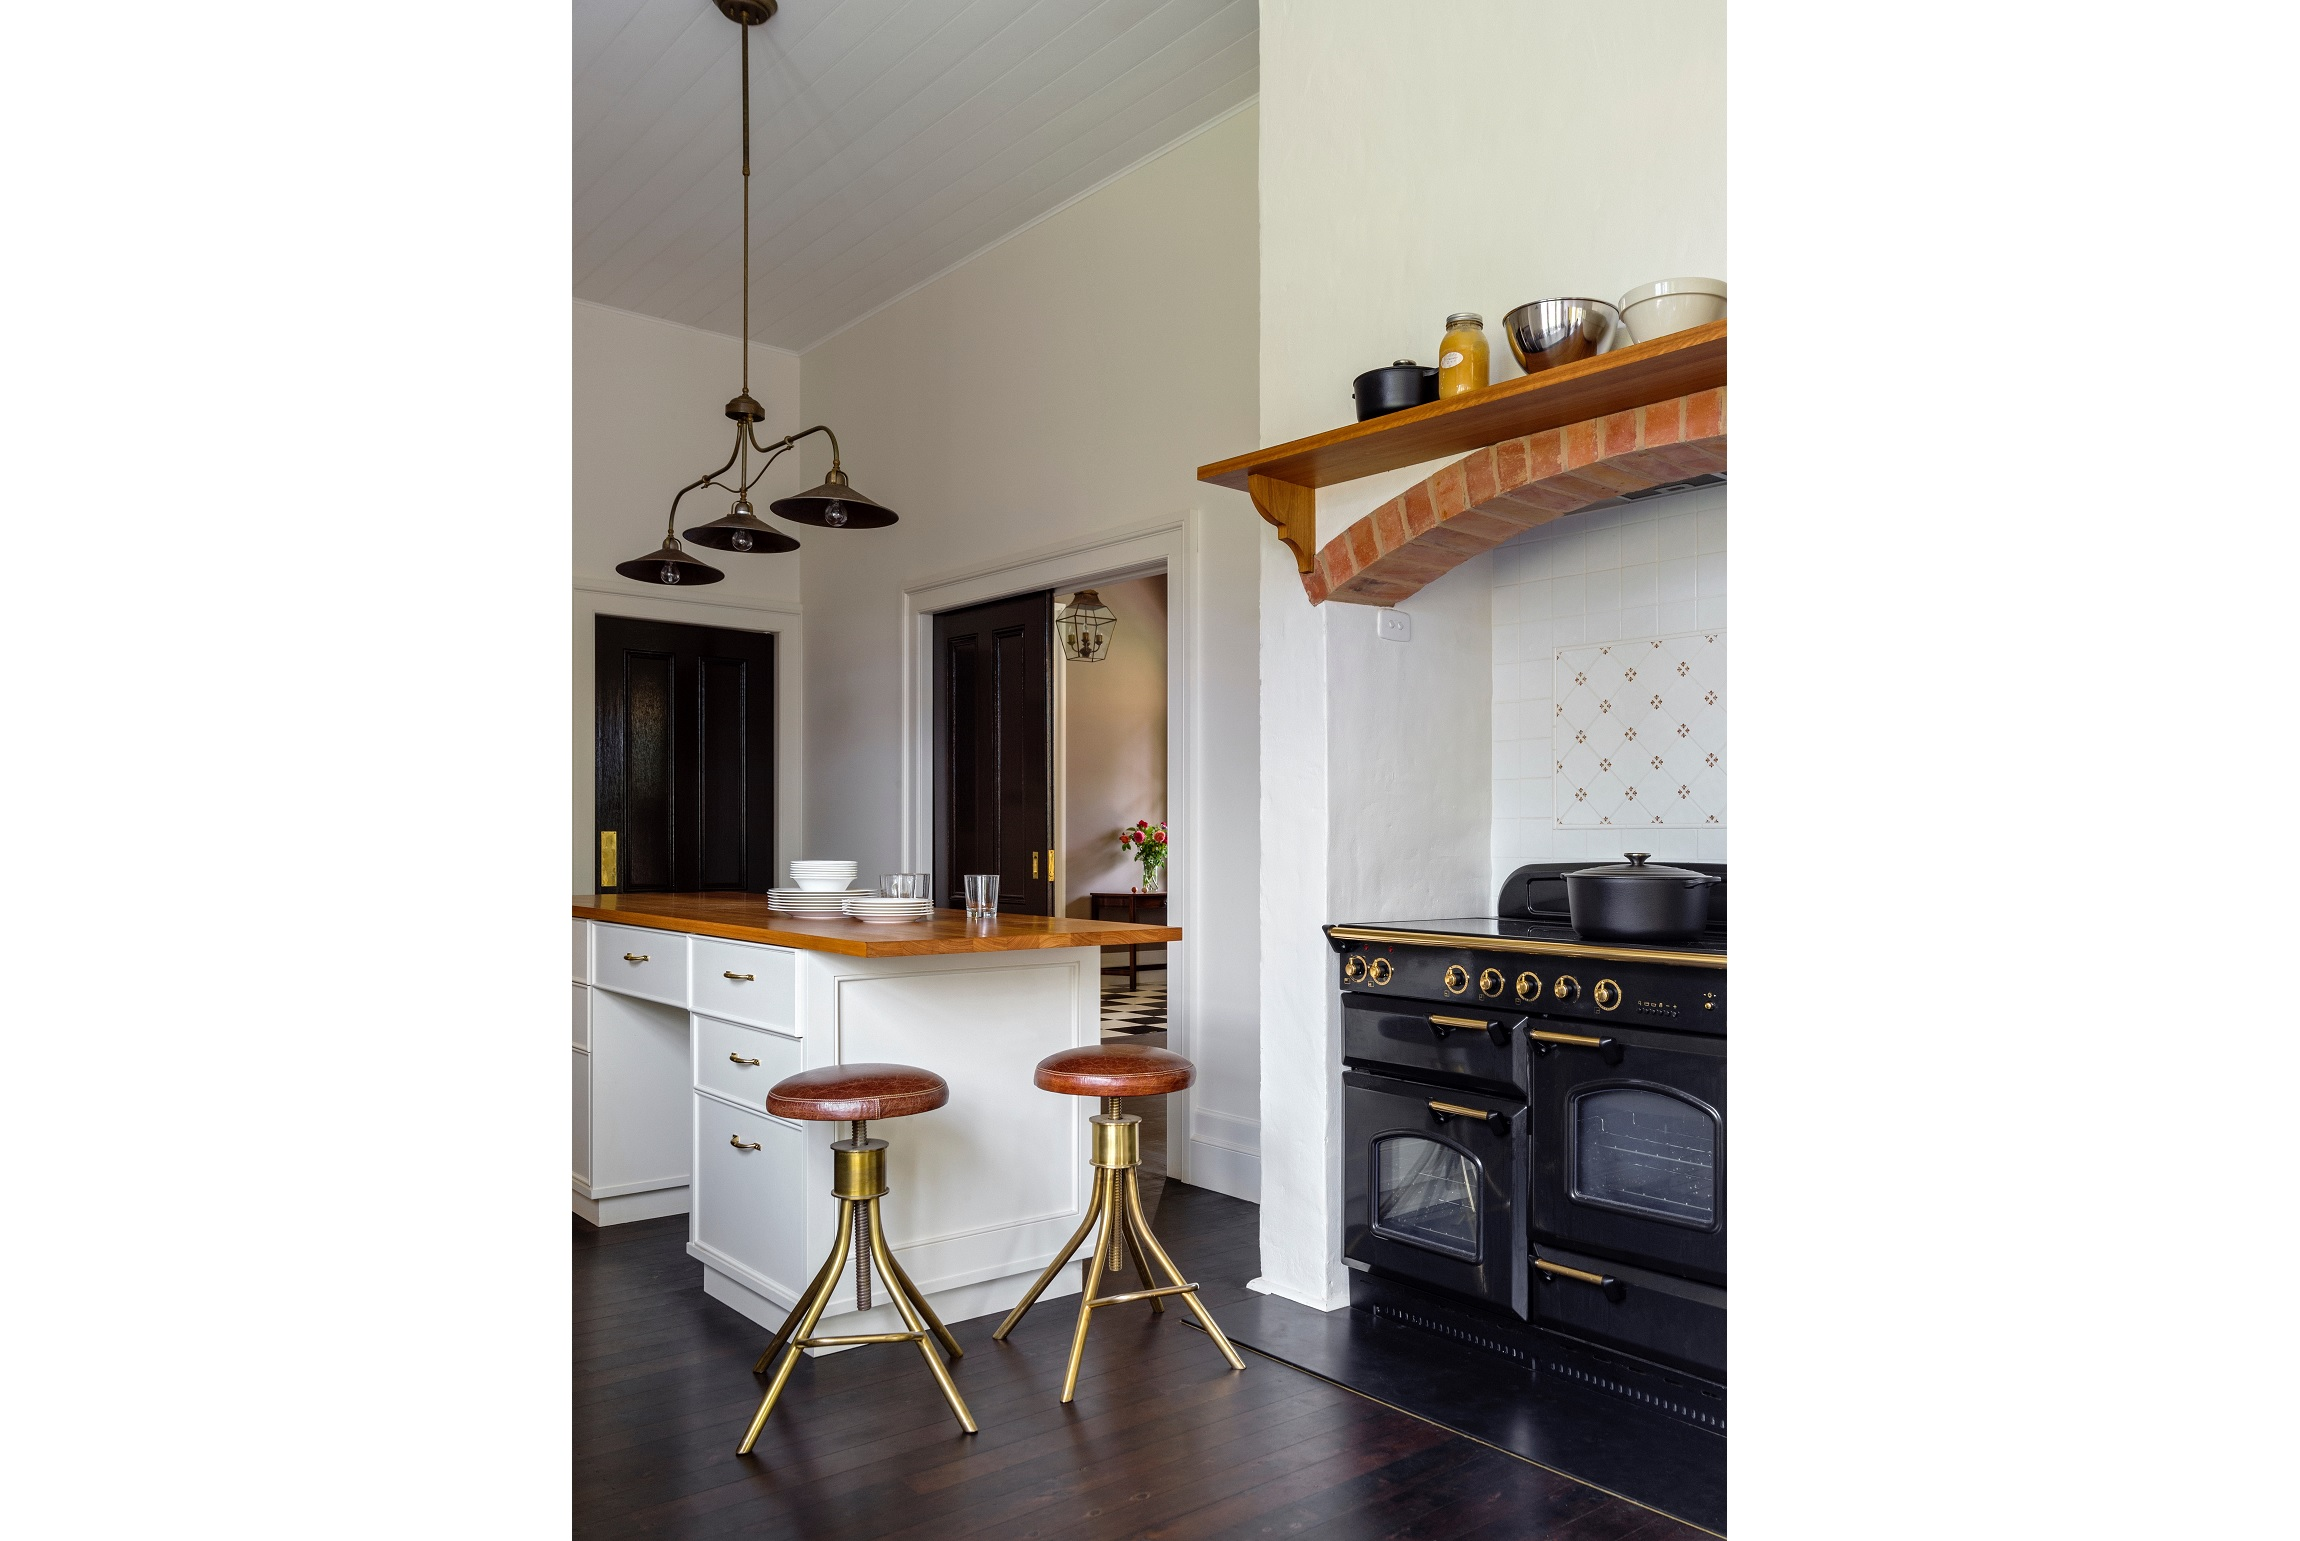 Country-Farmhouse-Kitchen-Fireplace-Oven-Wagga-Michael-Bell-Architects